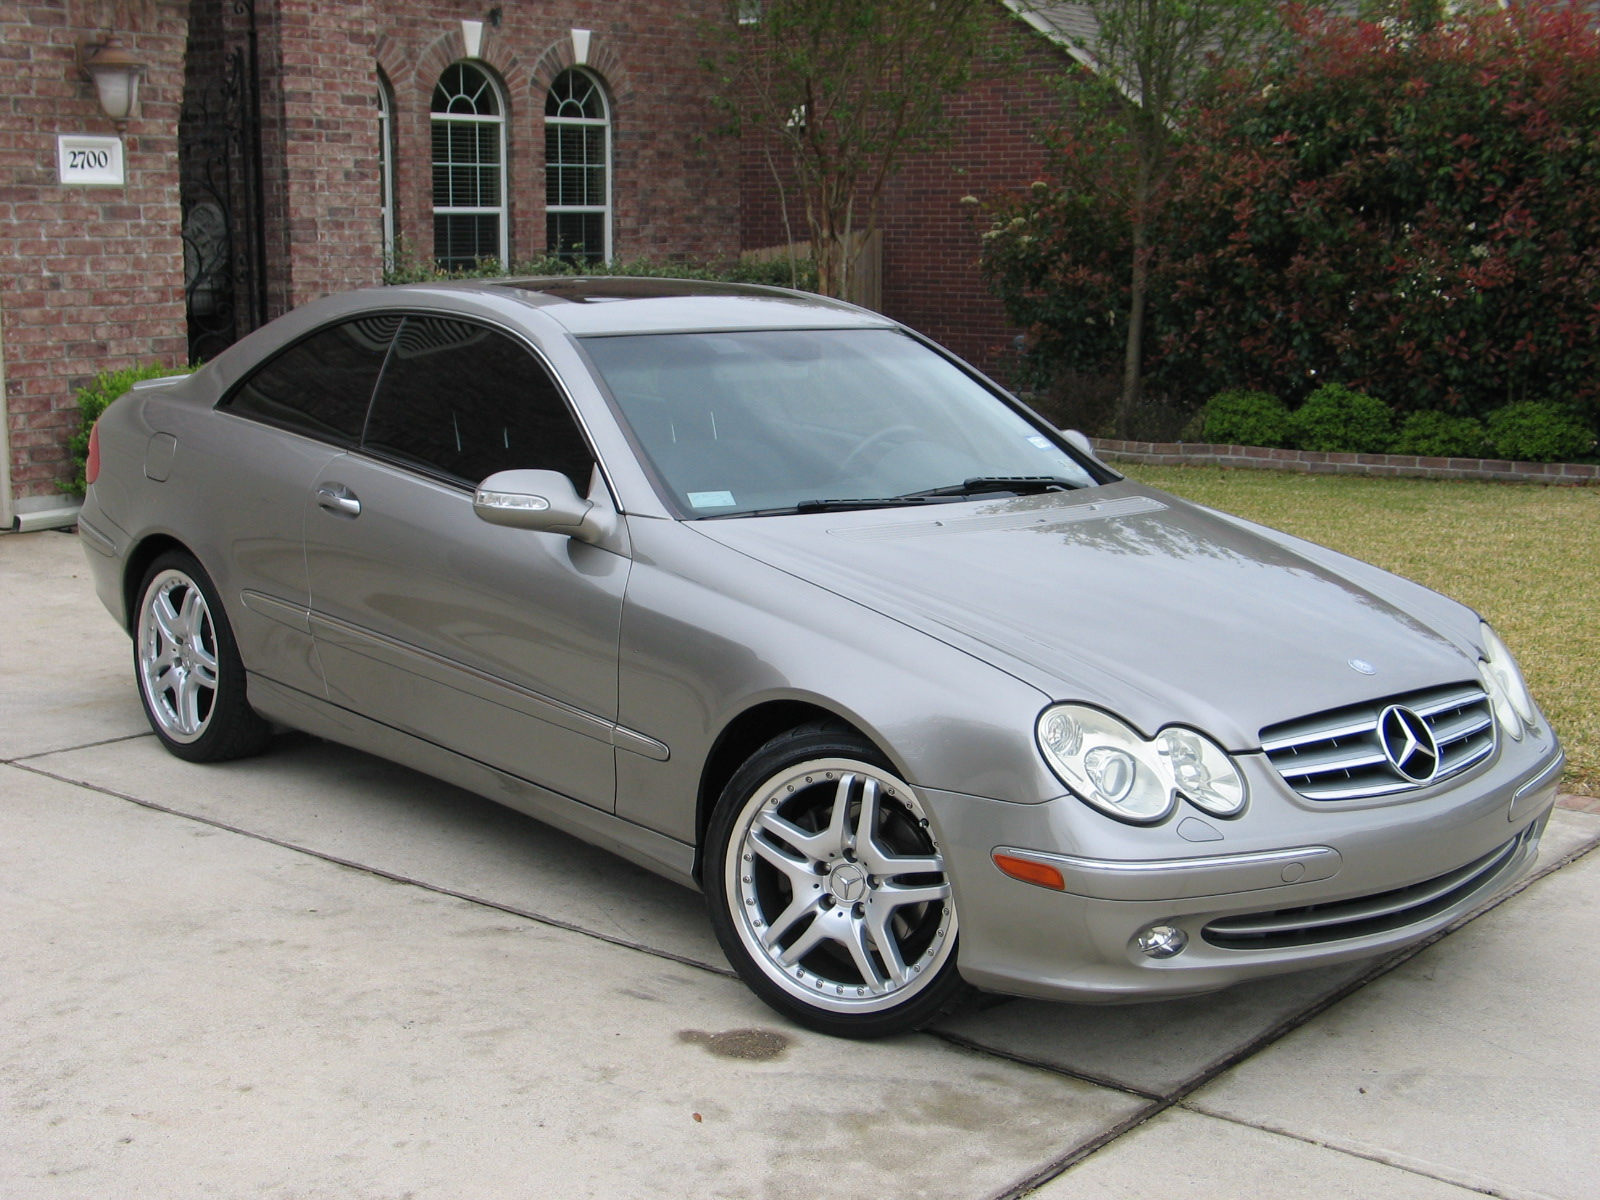 2004 mercedes clk320 2d coupe. Black Bedroom Furniture Sets. Home Design Ideas